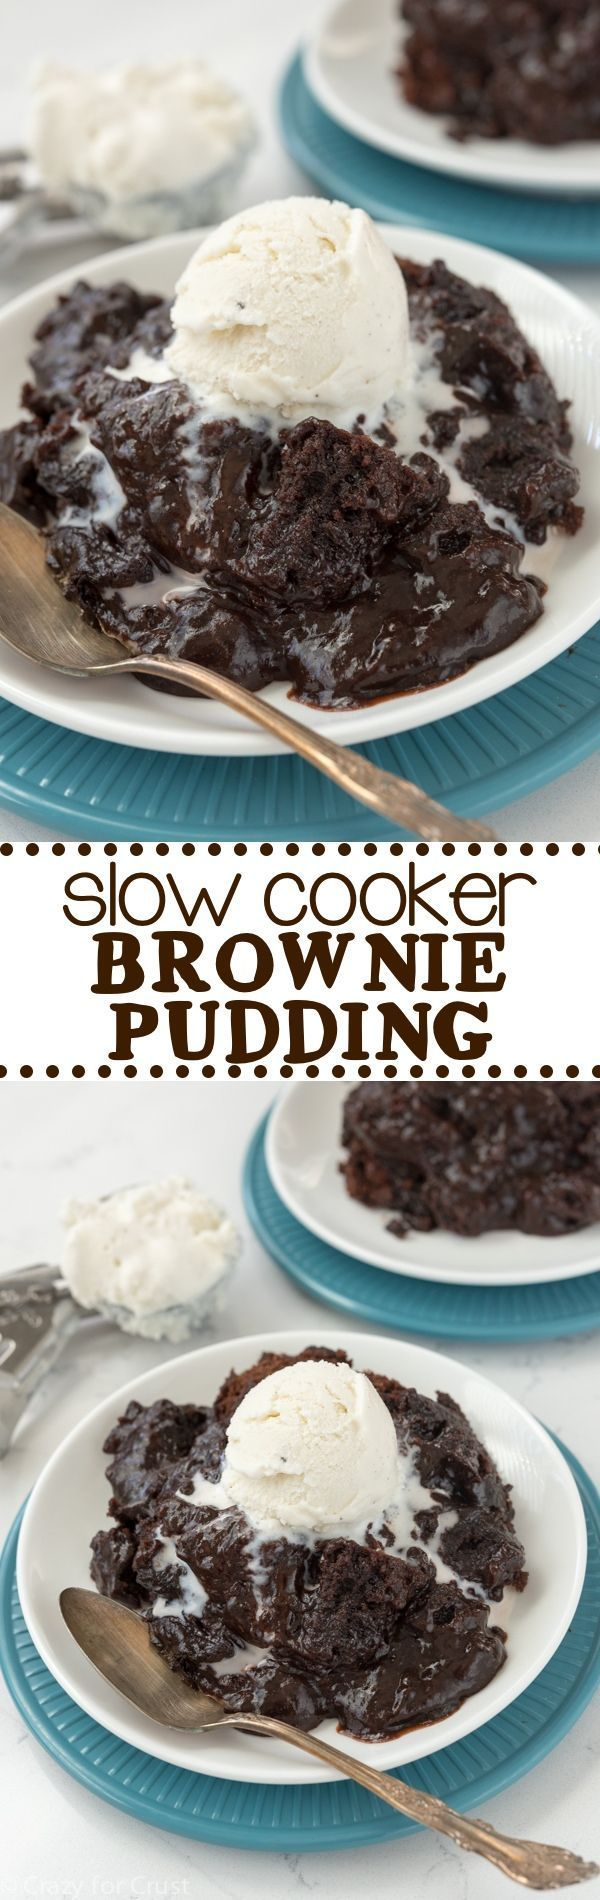 tiffany x earrings Slow Cooker Brownie Pudding  this easy recipe is so gooey and chocolatey It   s just like a crockpot lava cake but made with brownies